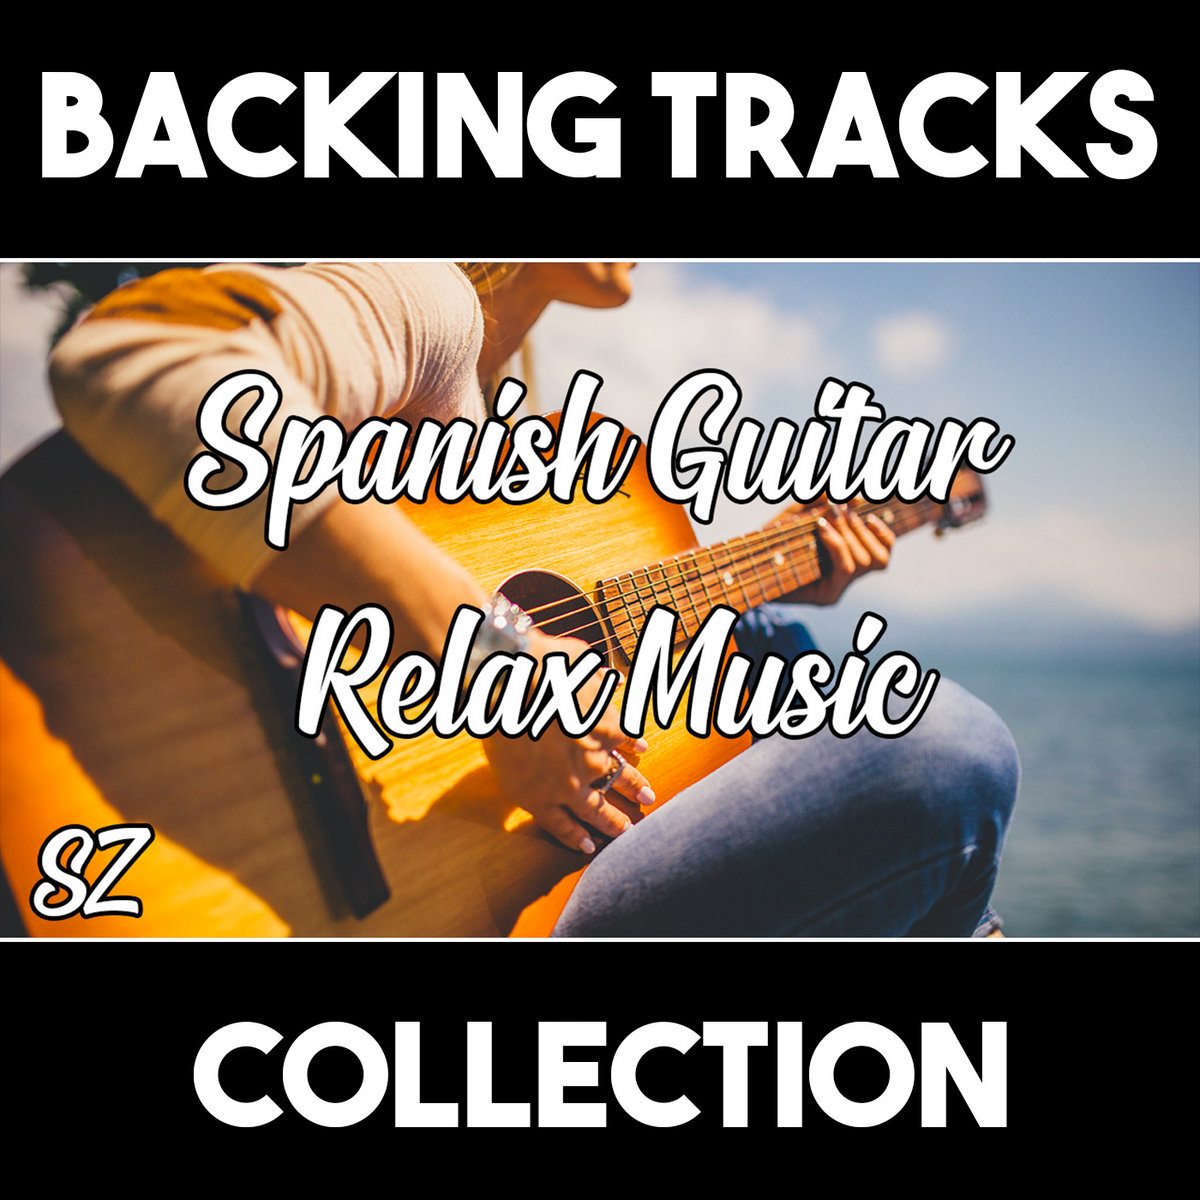 Chill Out Acoustic Guitar Backing Tracks Collection